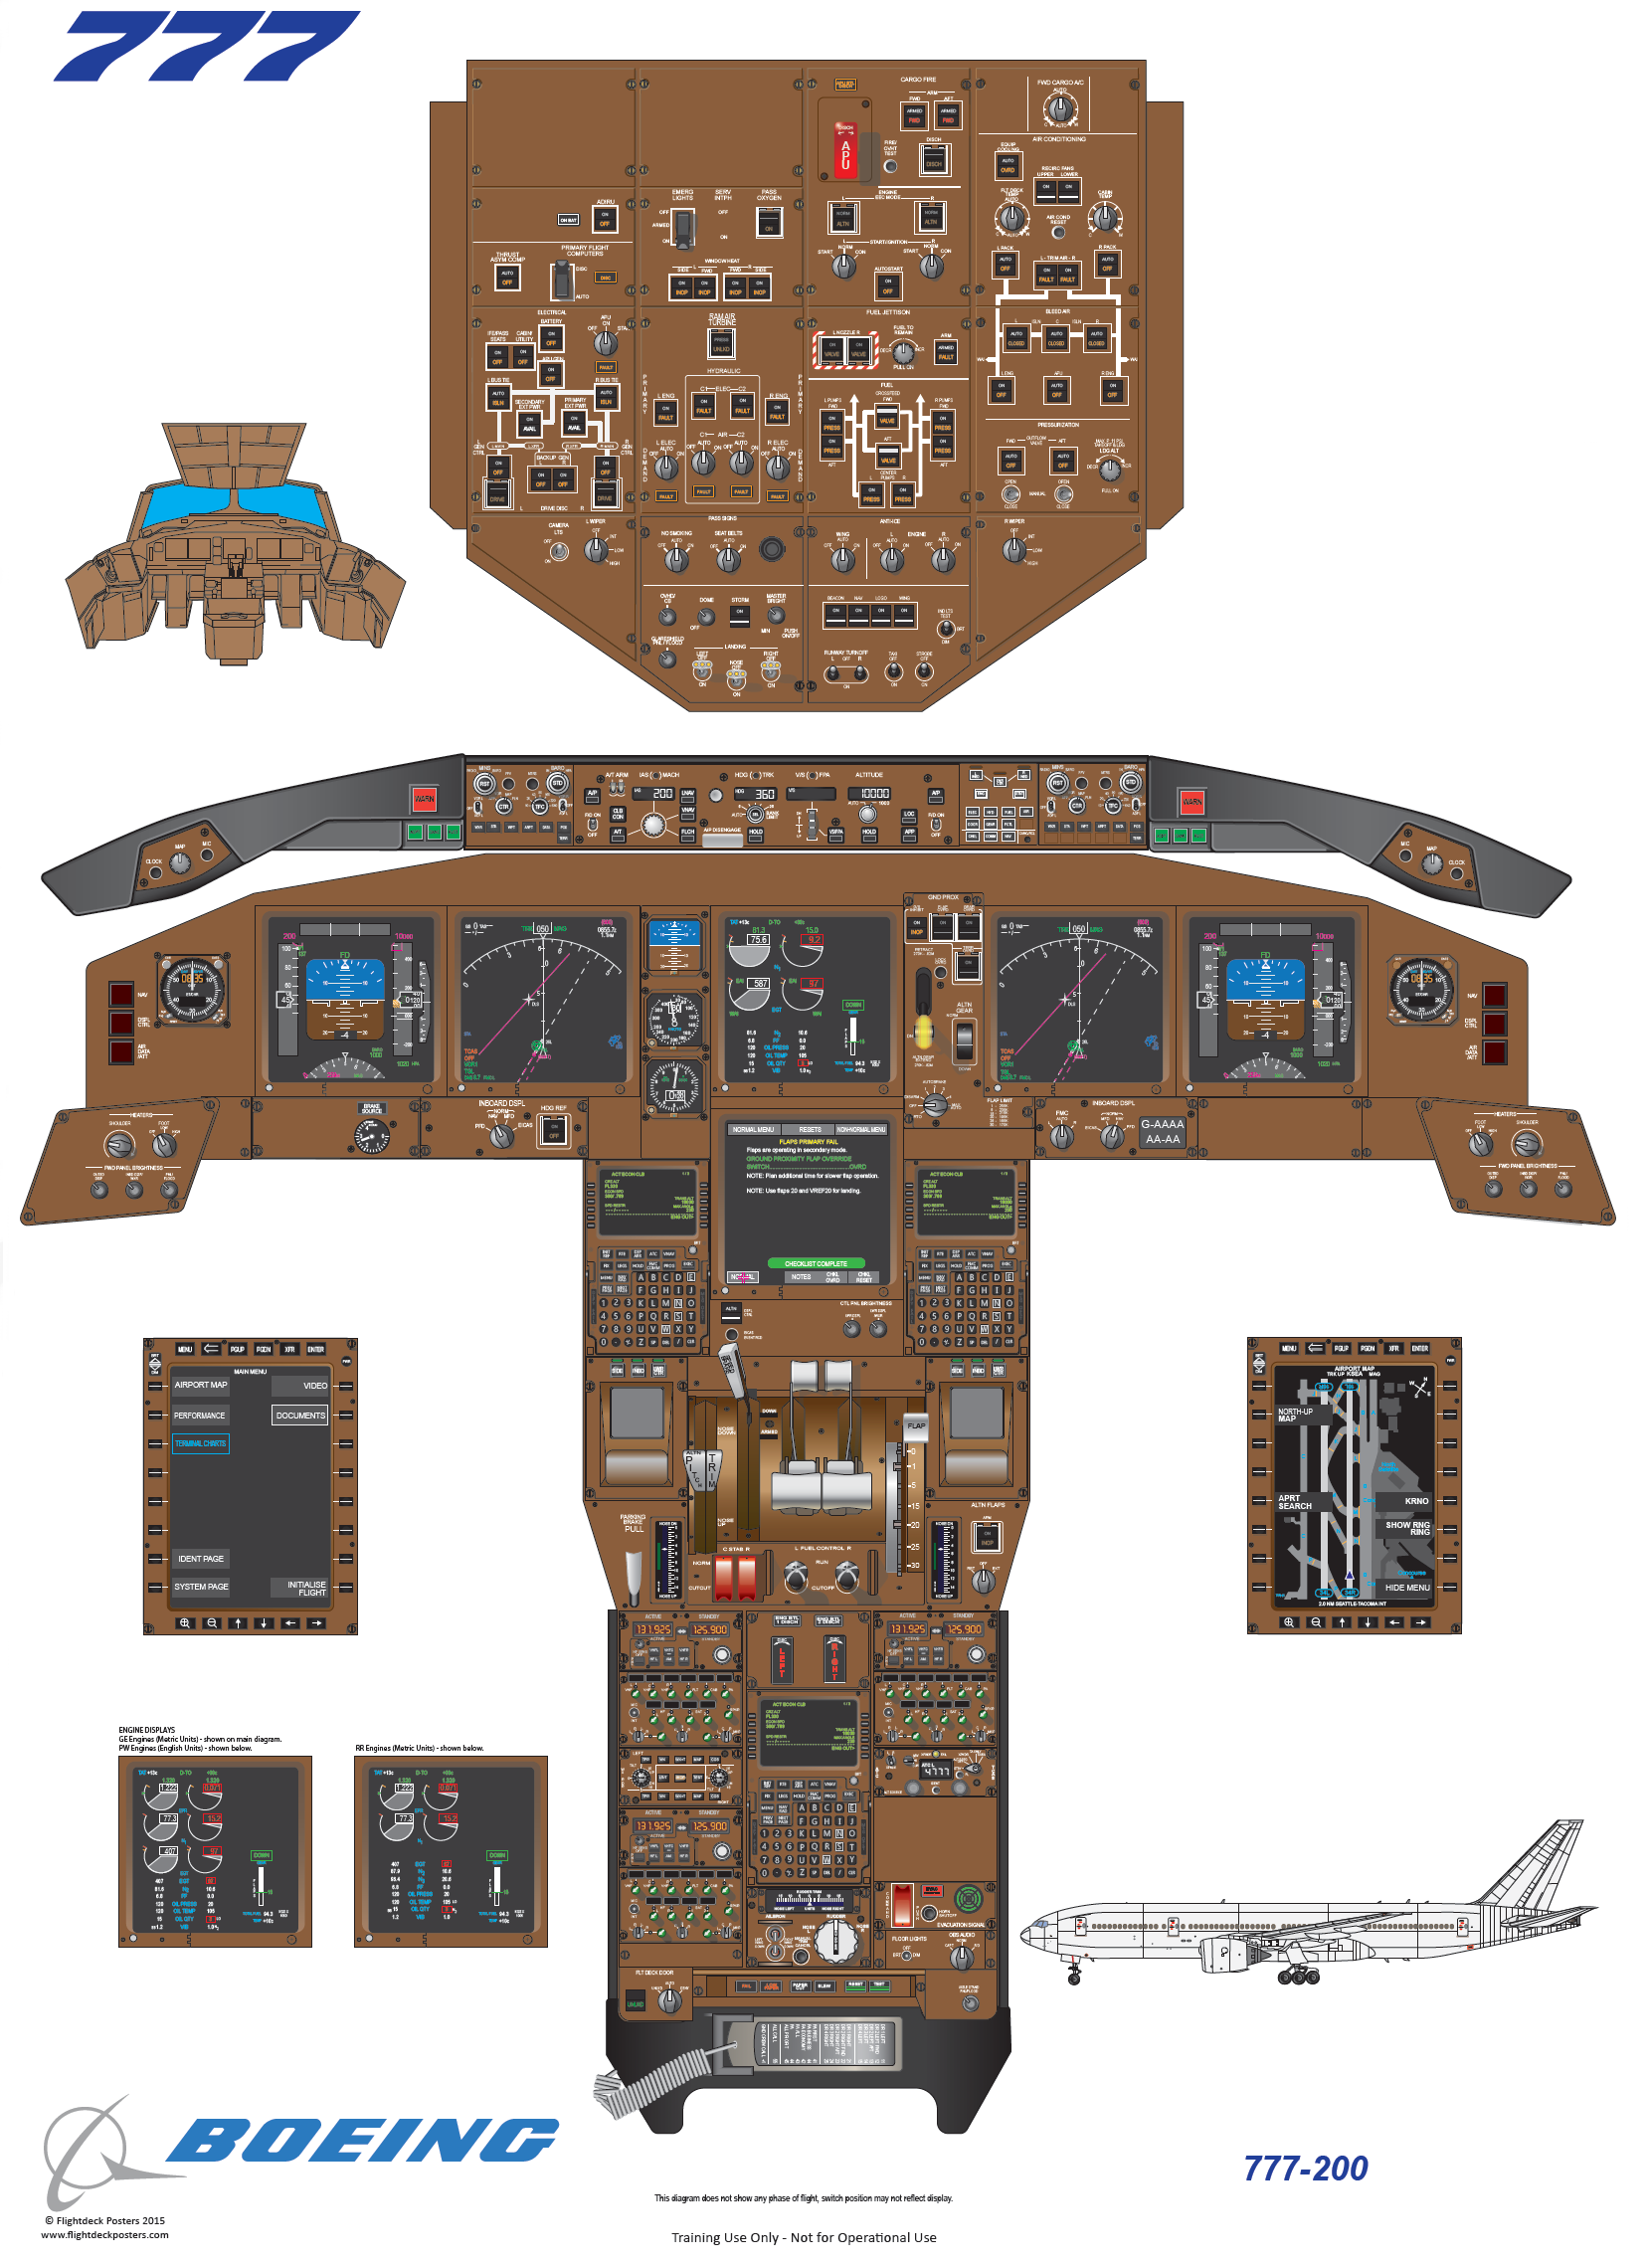 small resolution of boeing 777 cockpit diagram used for training pilots